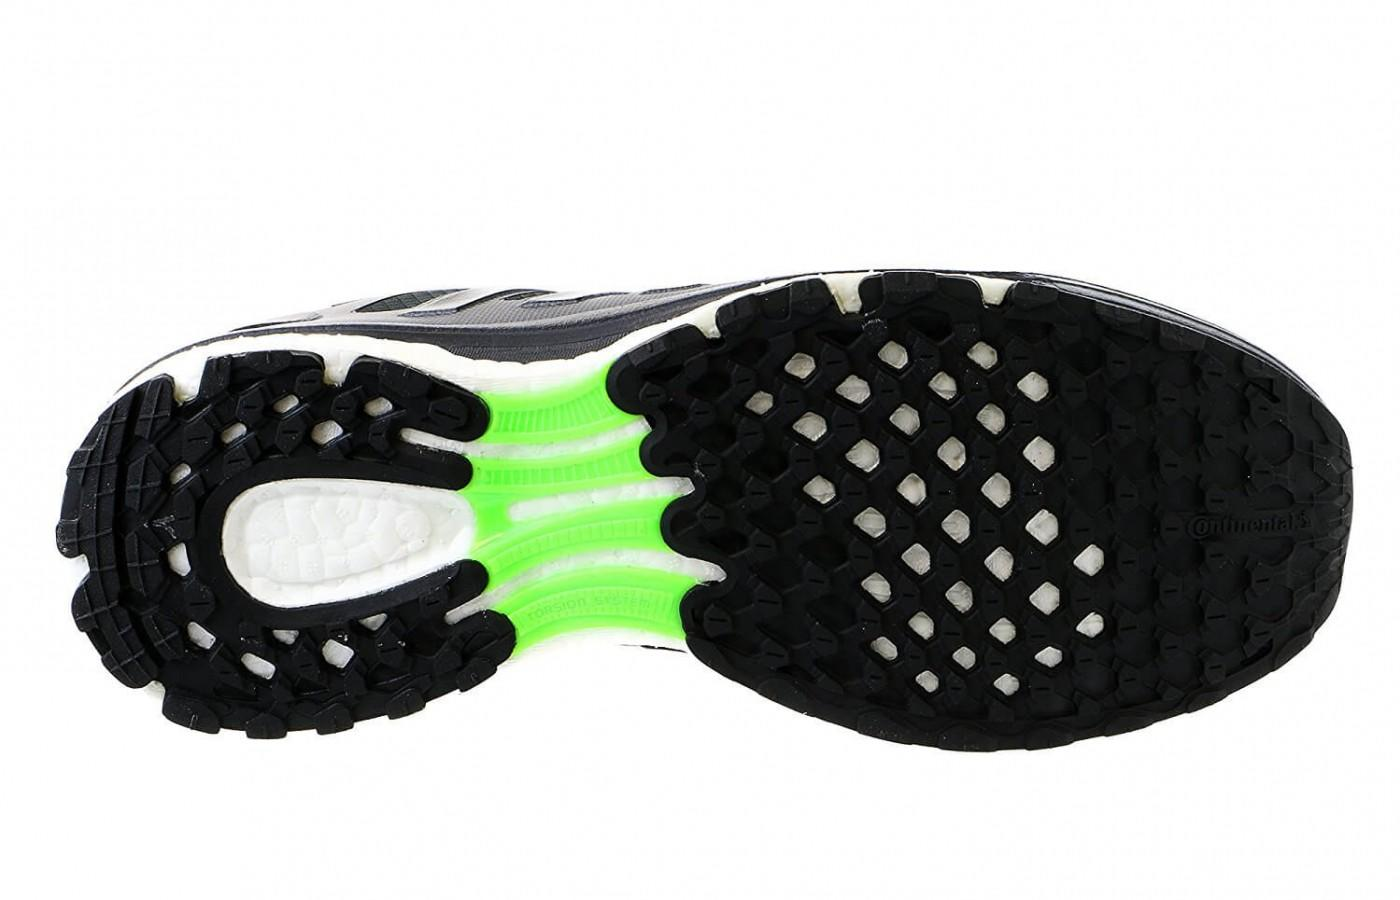 Adidas Supernova Glide ATR - bottom view